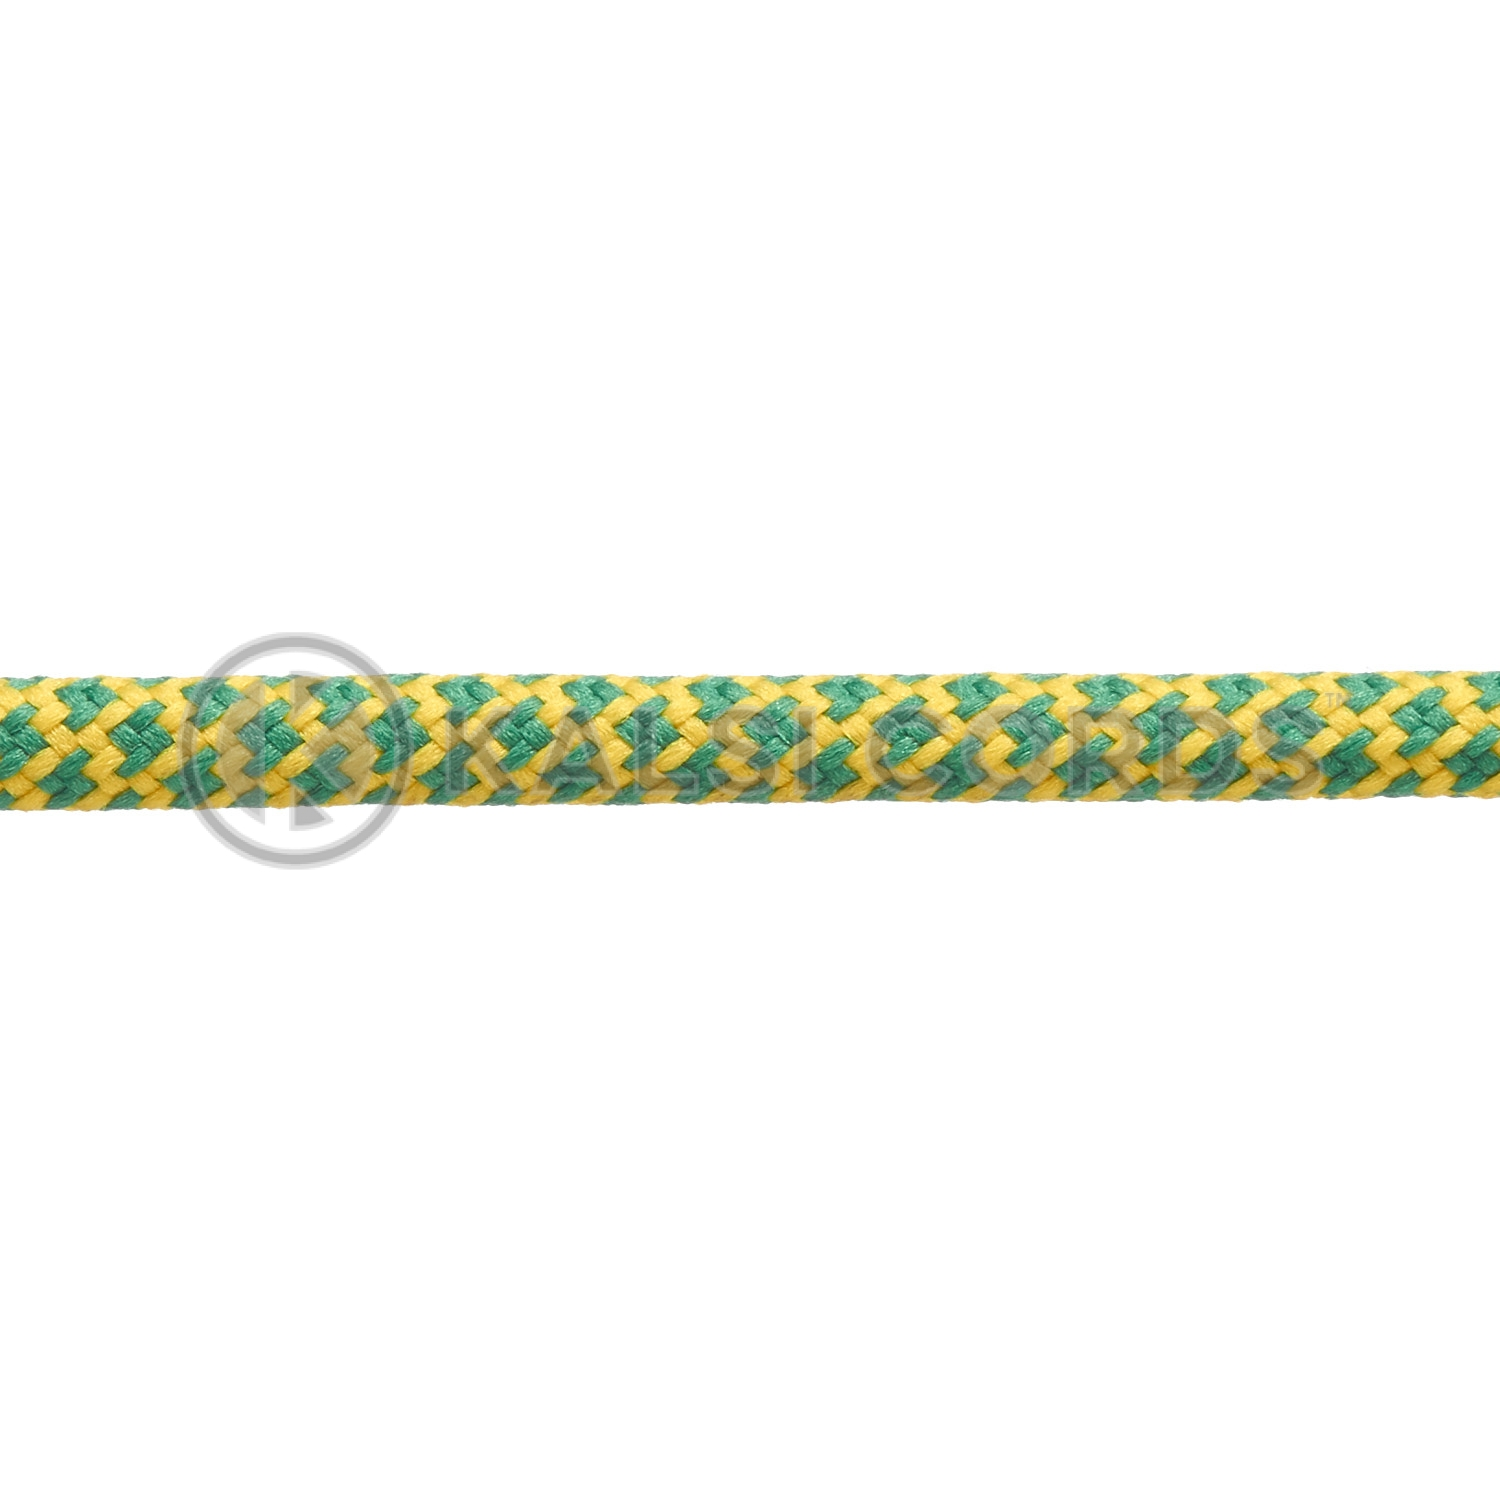 T655 5mm Round Cord Honeycomb Shoe Laces Emerald Green Yellow Kids Trainers Adults Adidas Yeezy Boost Hiking Walking Boots Kalsi Cords